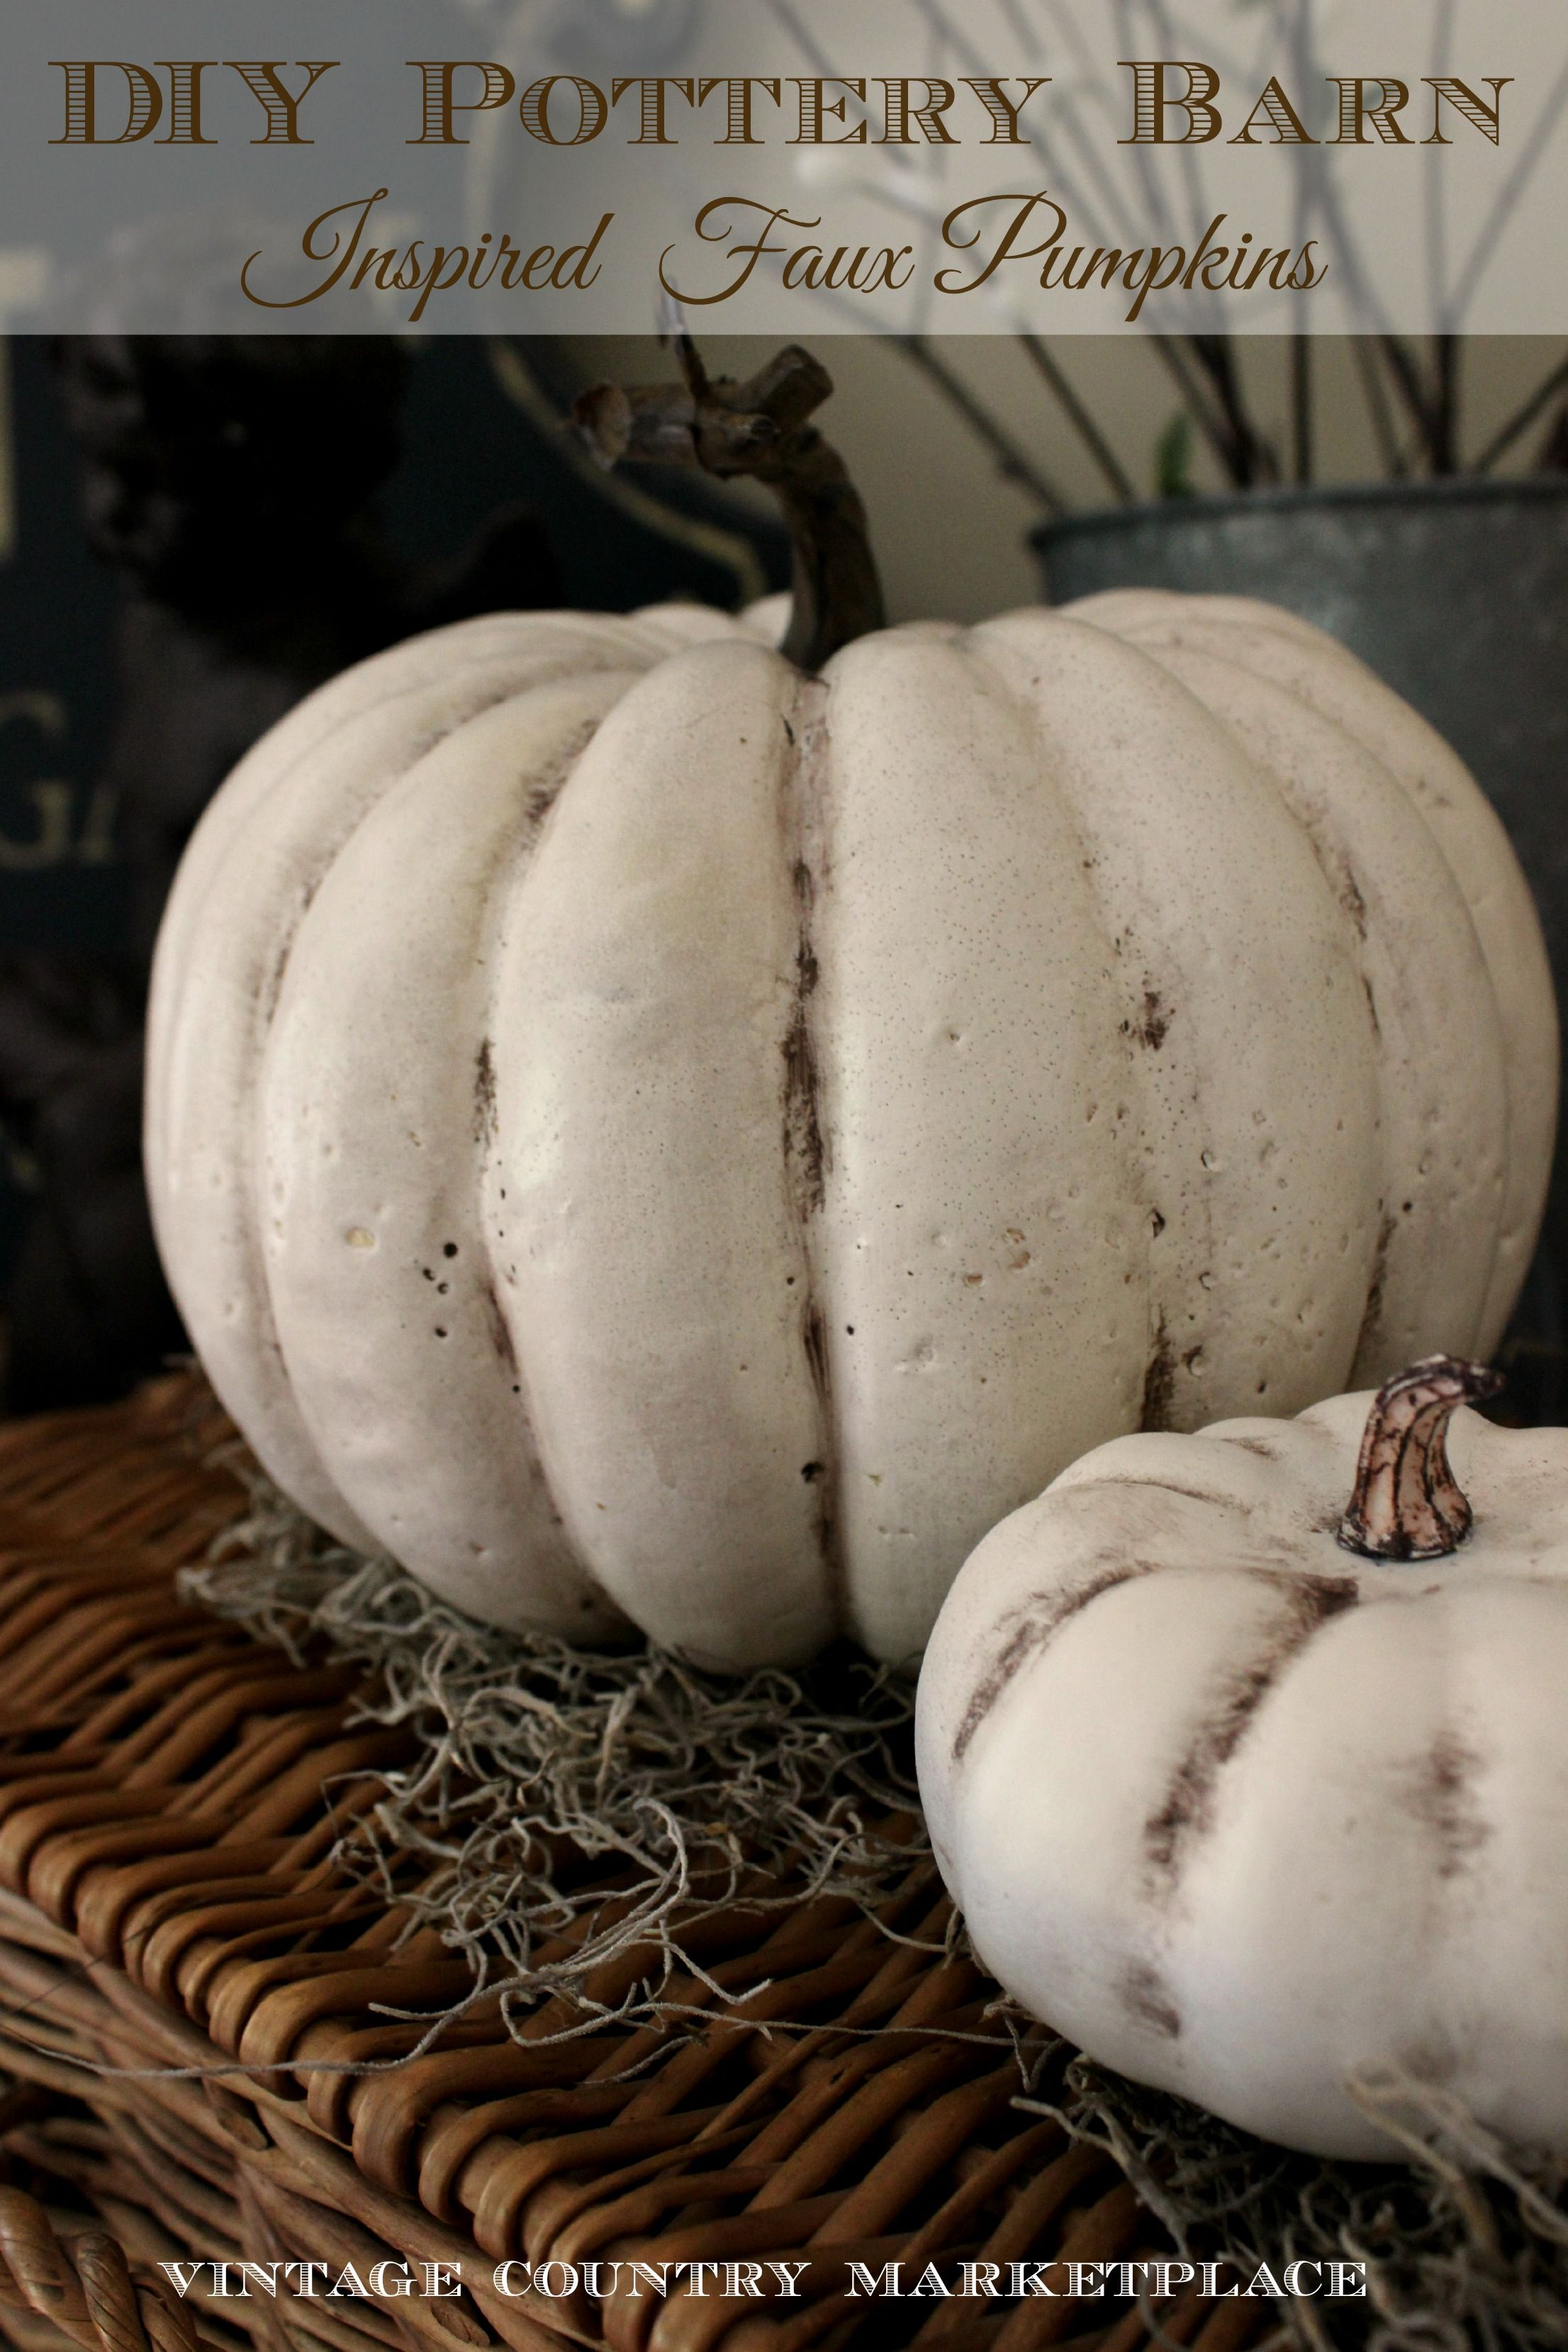 How to store pumpkins - Diy Pottery Barn Inspired Pumpkins Using Dollar Store Pumpkins Http Gingerandcompany